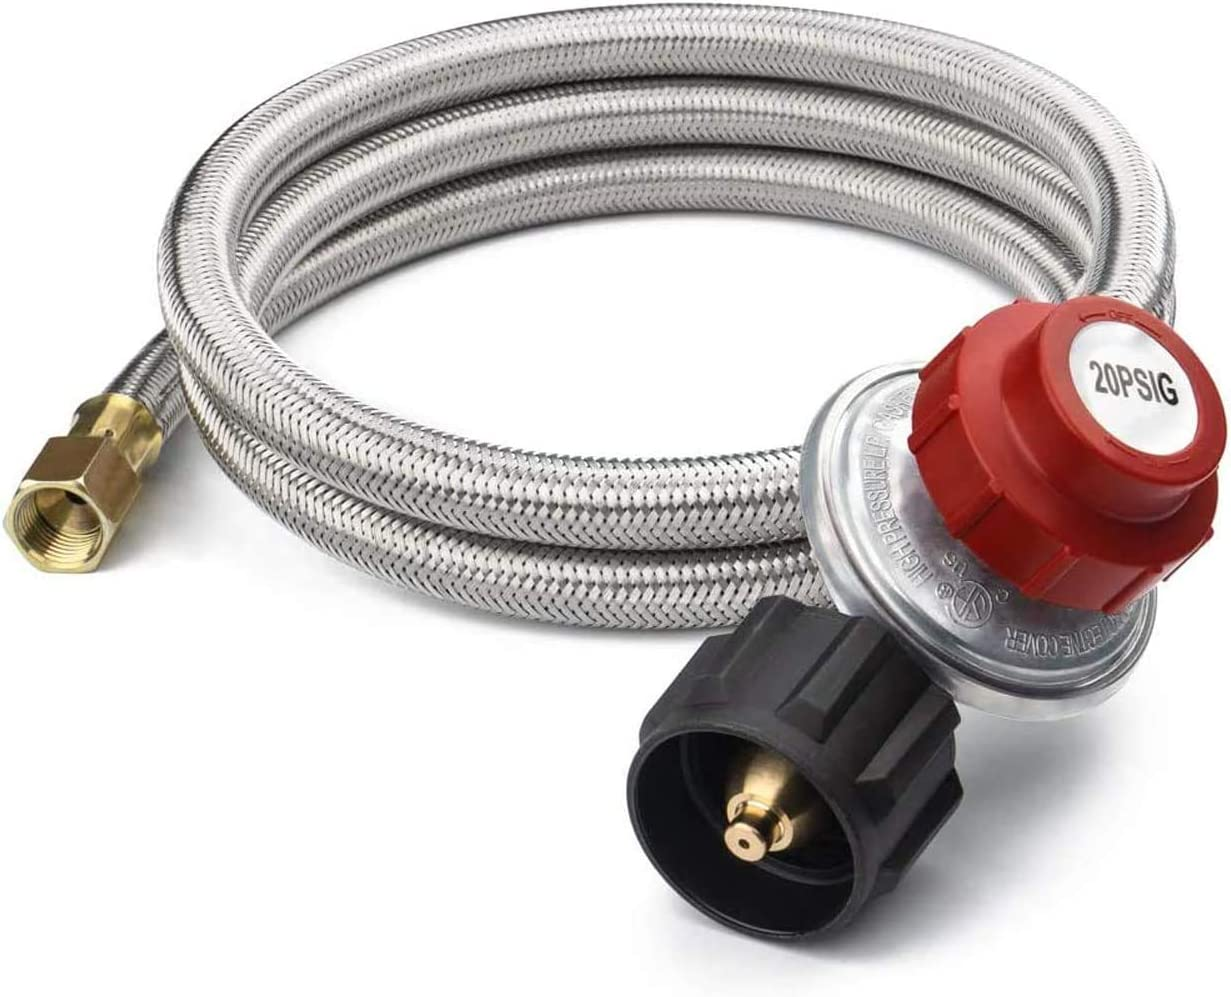 SHINESTAR 8FT 20 PSI Adjustable Propane Gas Regulator, High Pressure Propane Regulator with Braided Hose for Turkey Fryer, Burner, Cooker, Grill, Fire Pit, Smoker and More, QCC1/Type1 Connection